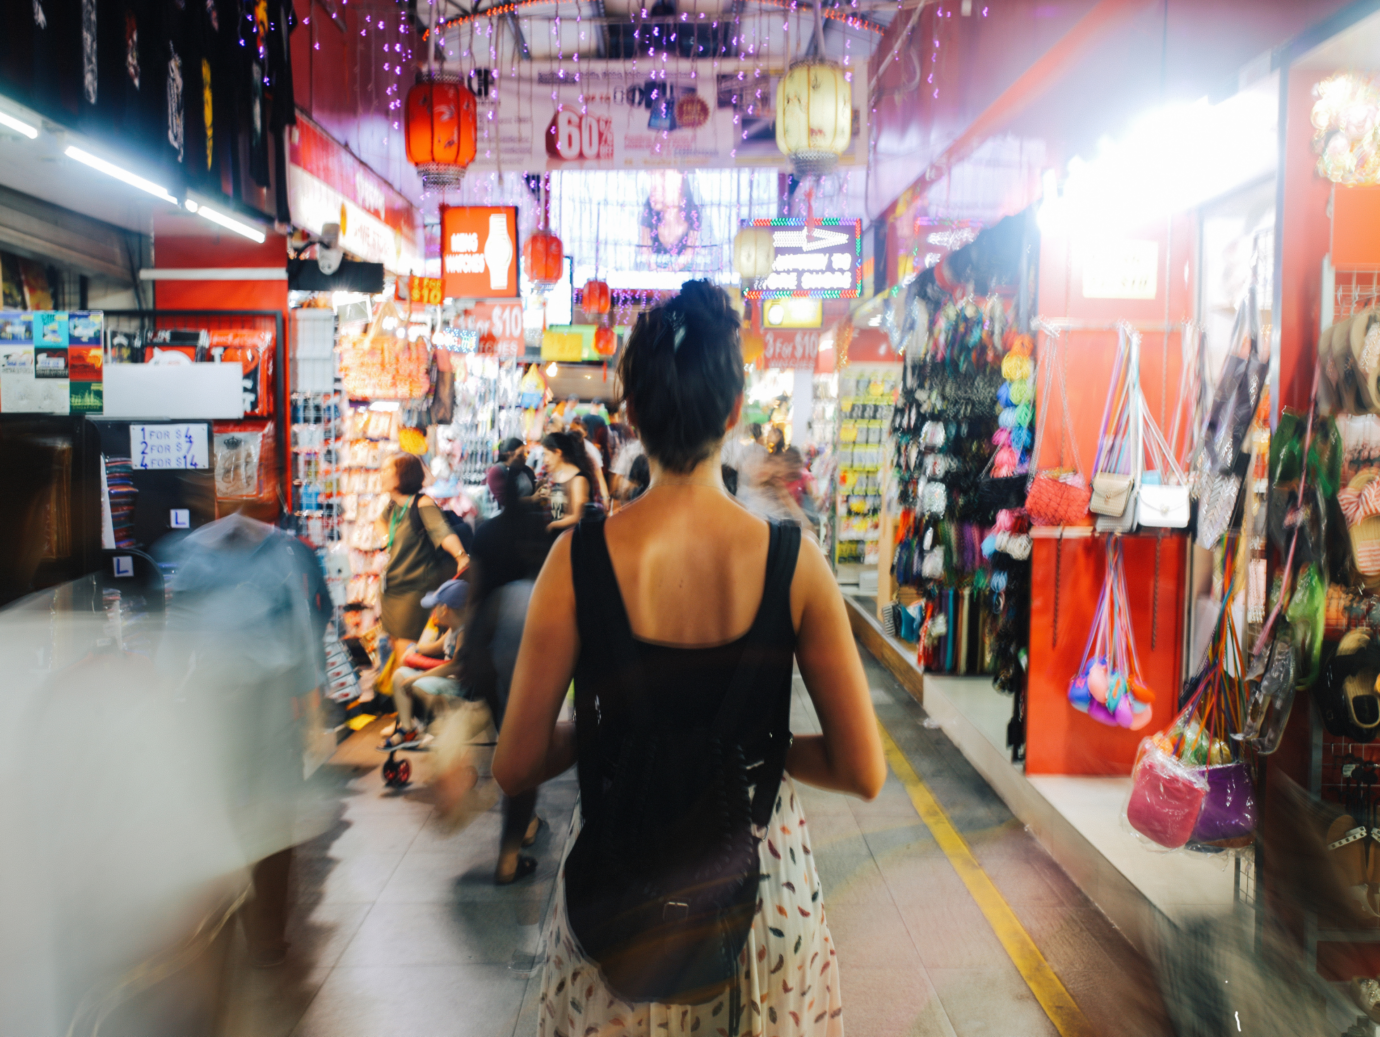 3 Unnecessary Pitfalls Choosing Where to Travel for the First Time - Travepreneur